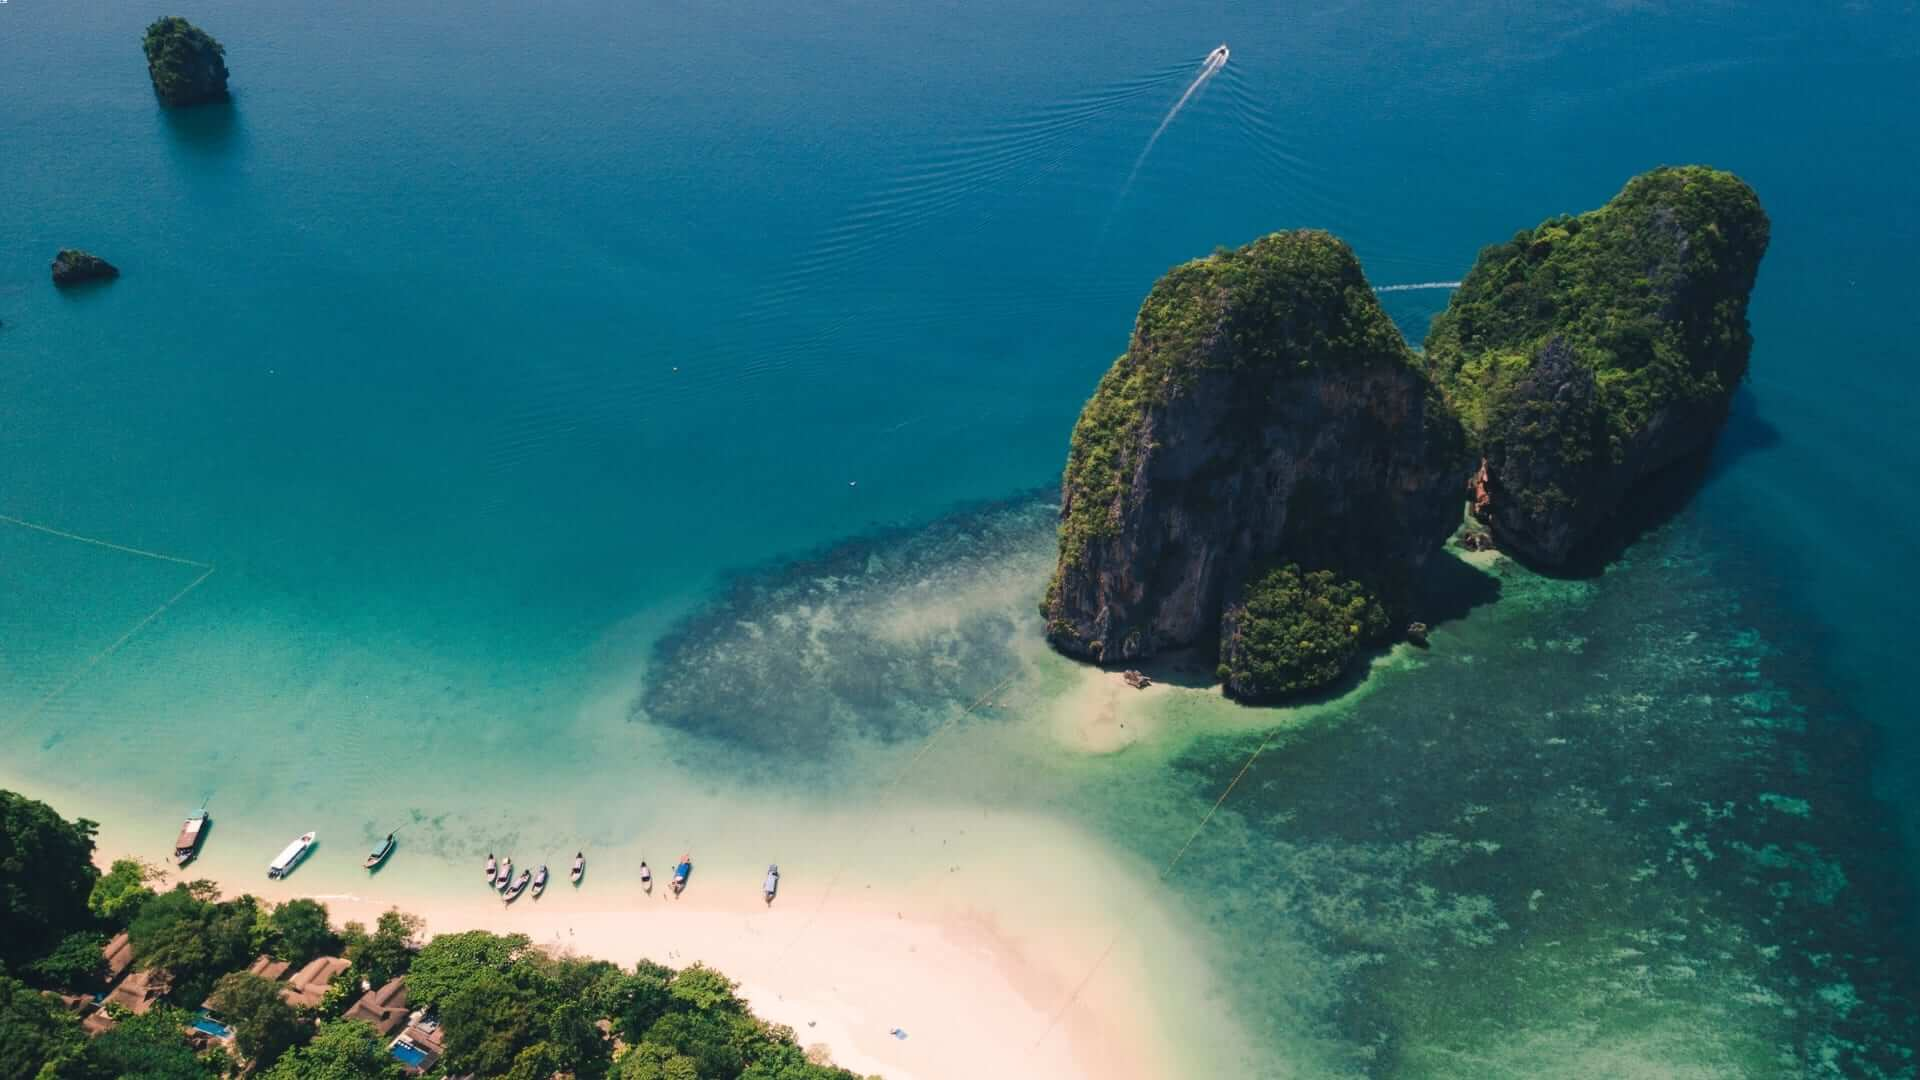 A small island next to a white beach and blue water in Thailand.